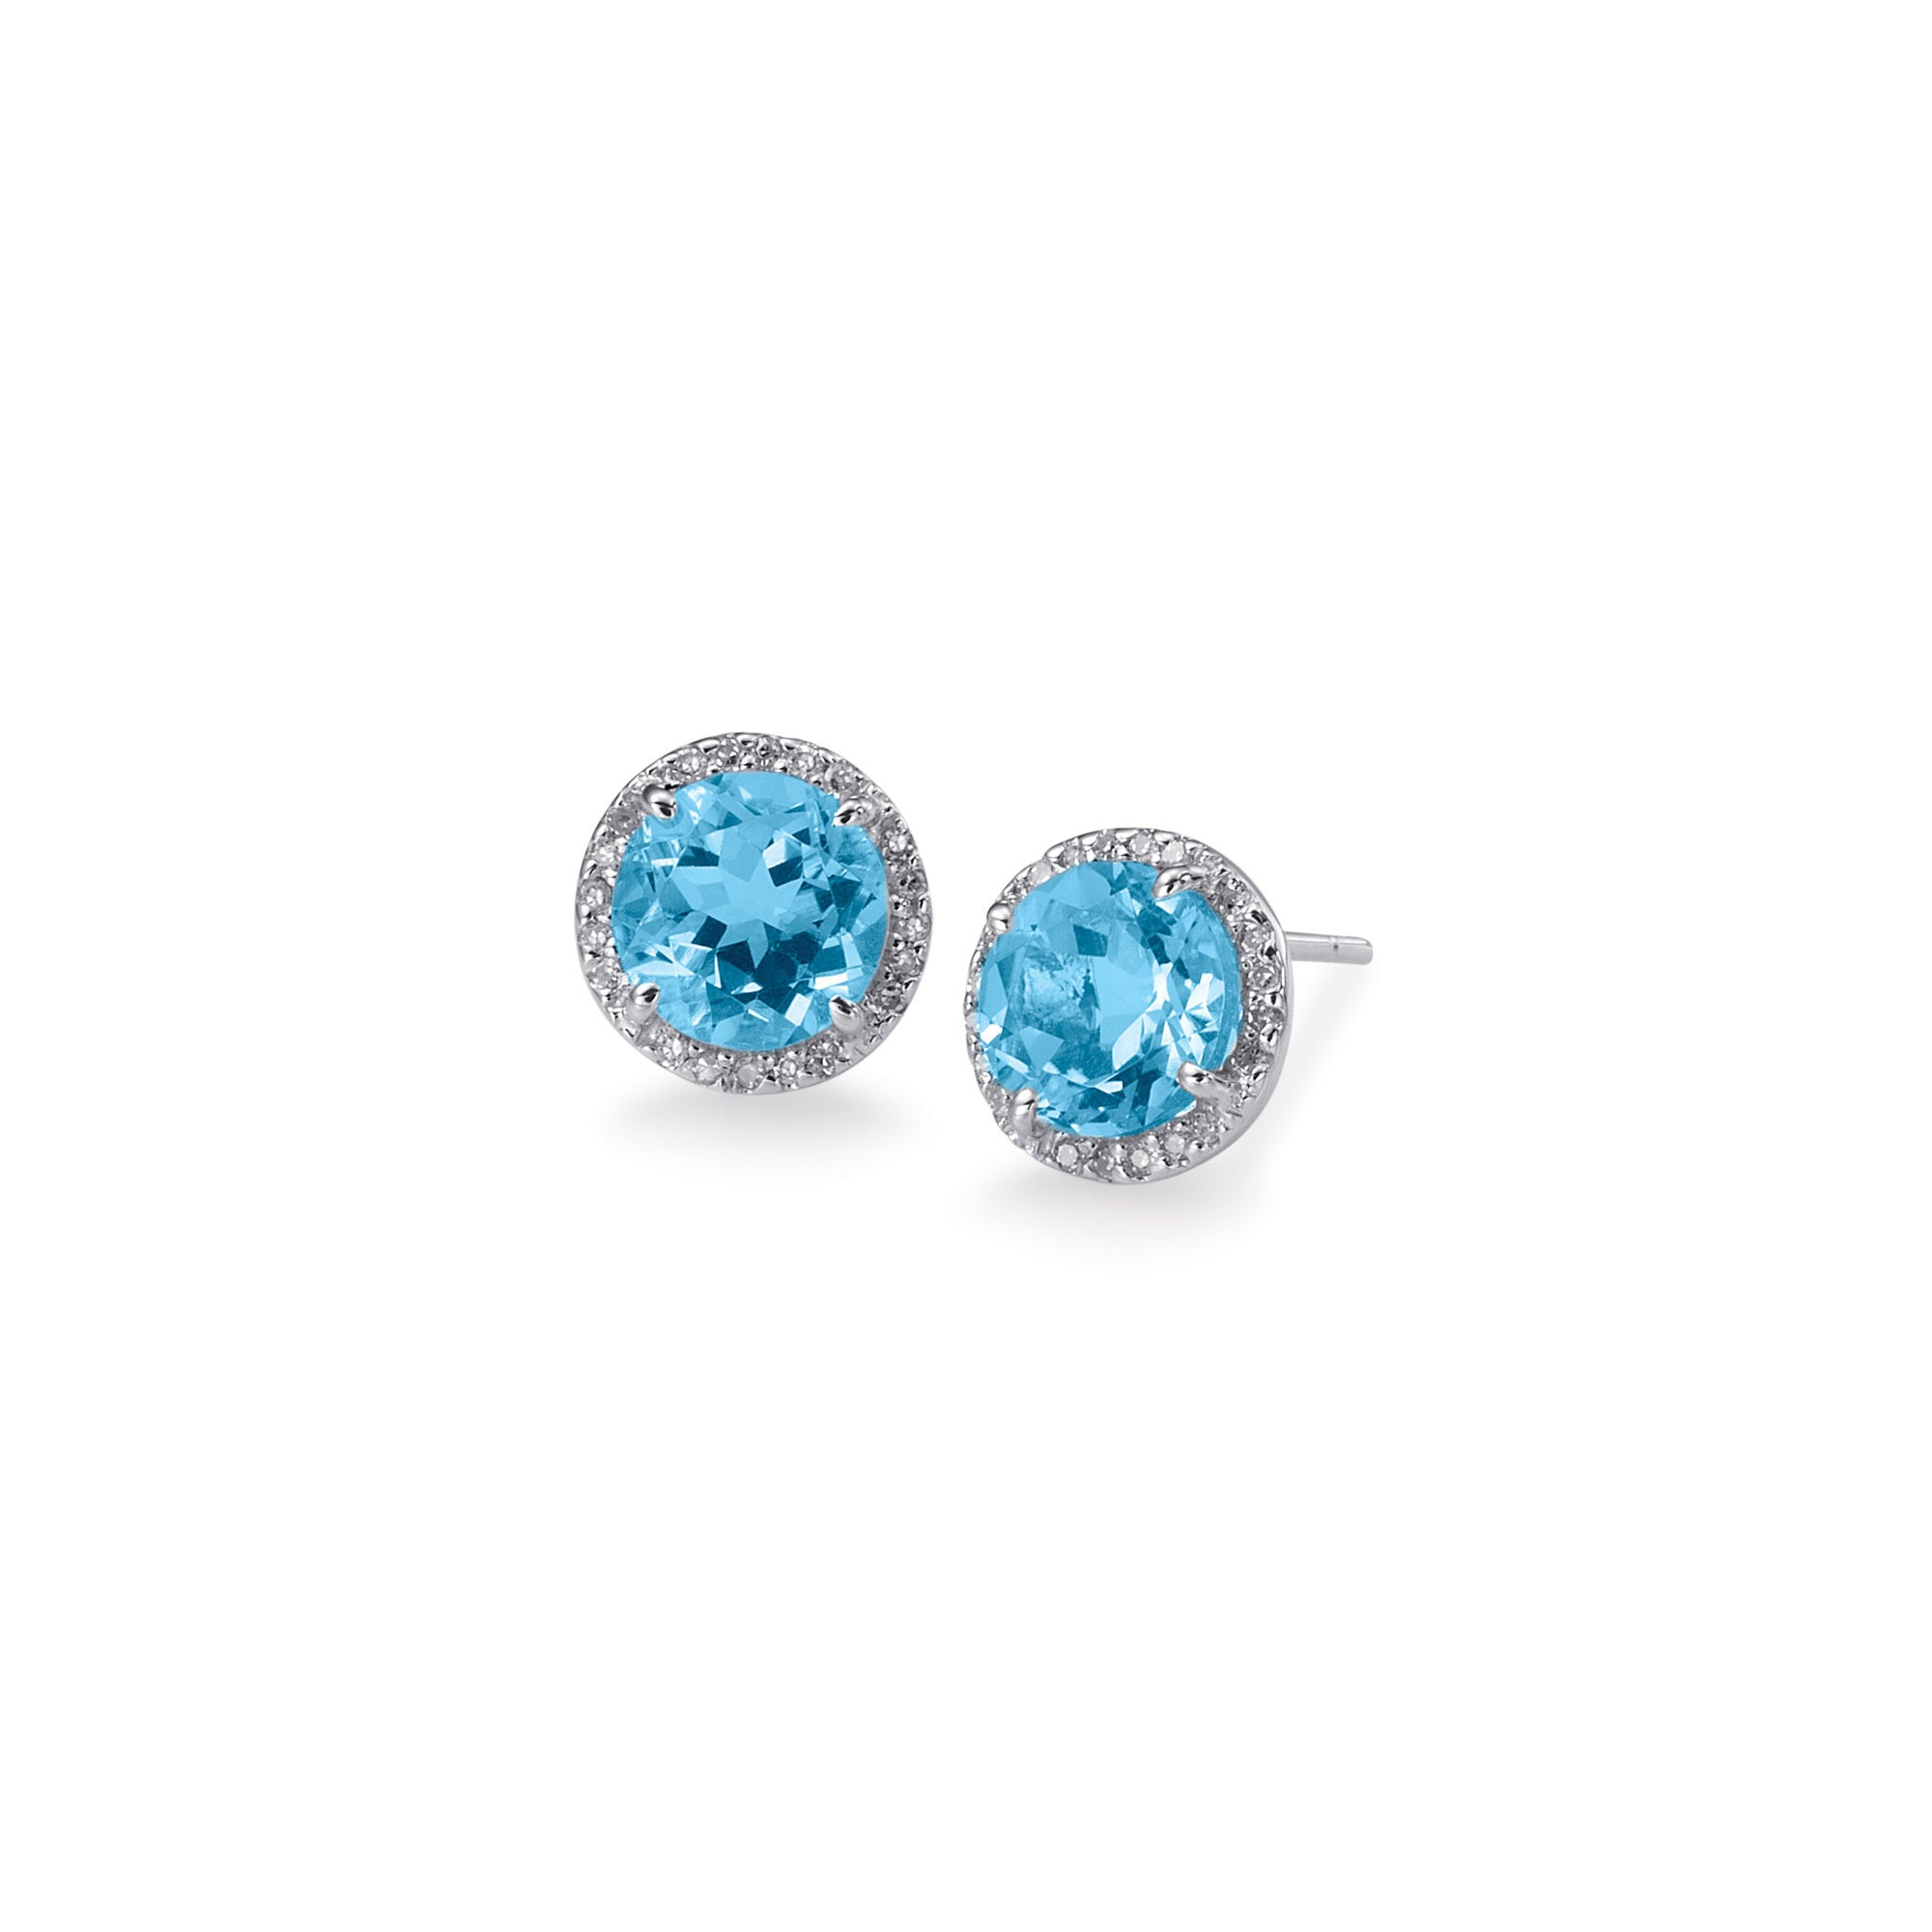 blue studs stud earrings mcdonough kiki topaz diamond jewellery product grace bt heart